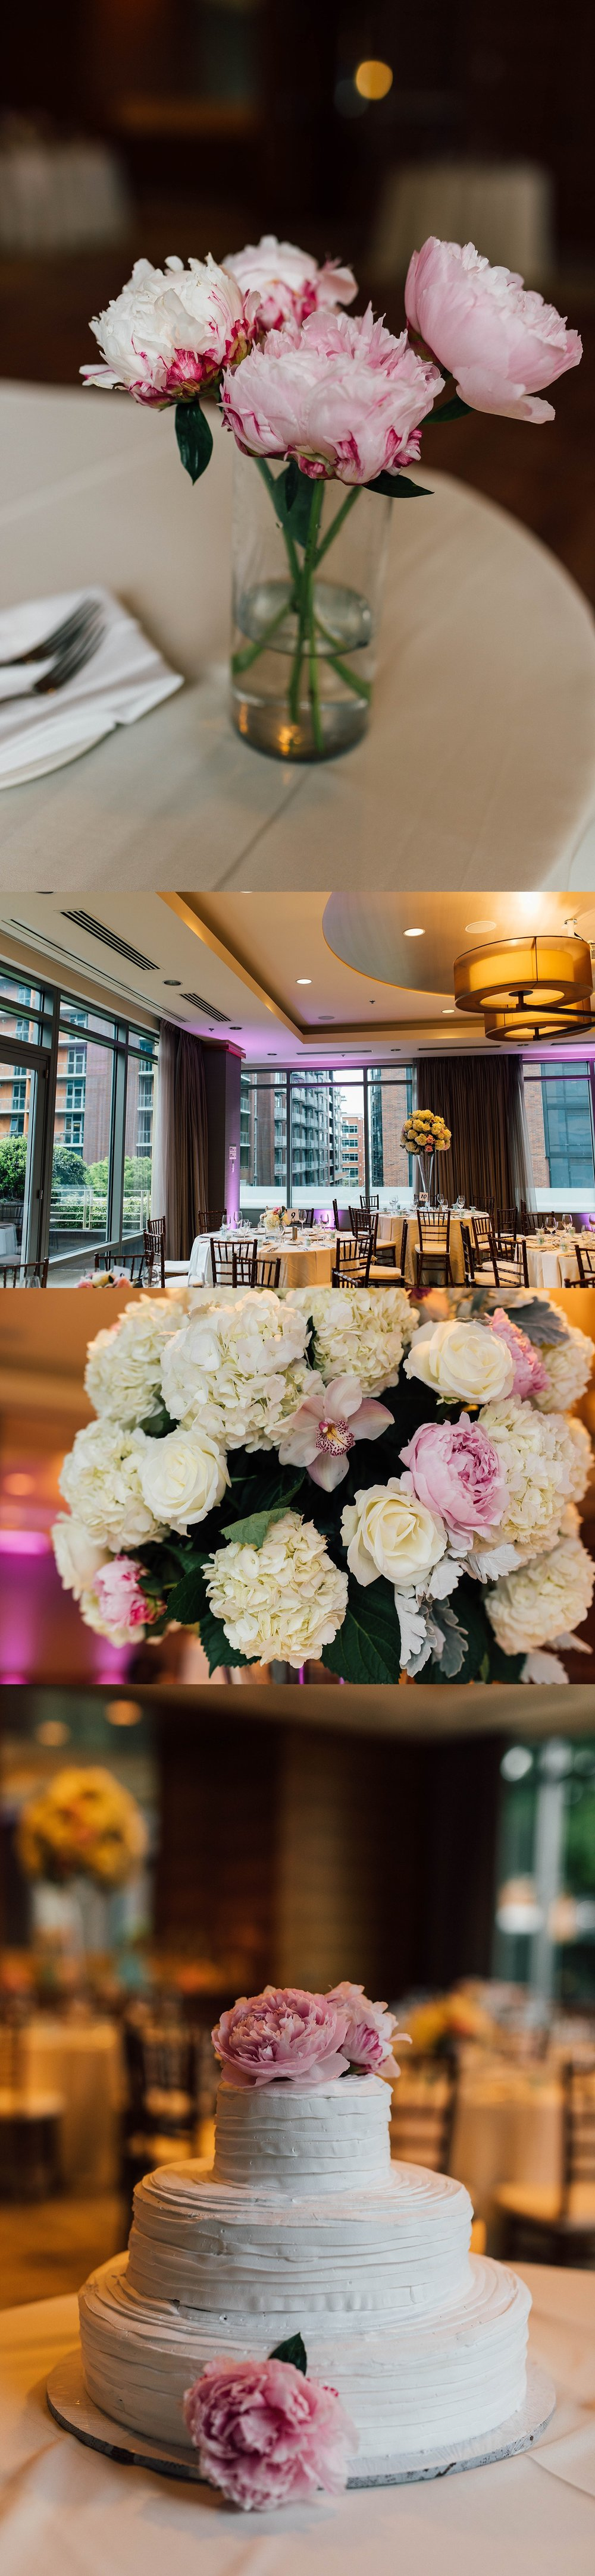 Seattle Pan Pacific Hotel Wedding | Kim + Cody | PNW Wedding Photographer-17.jpg